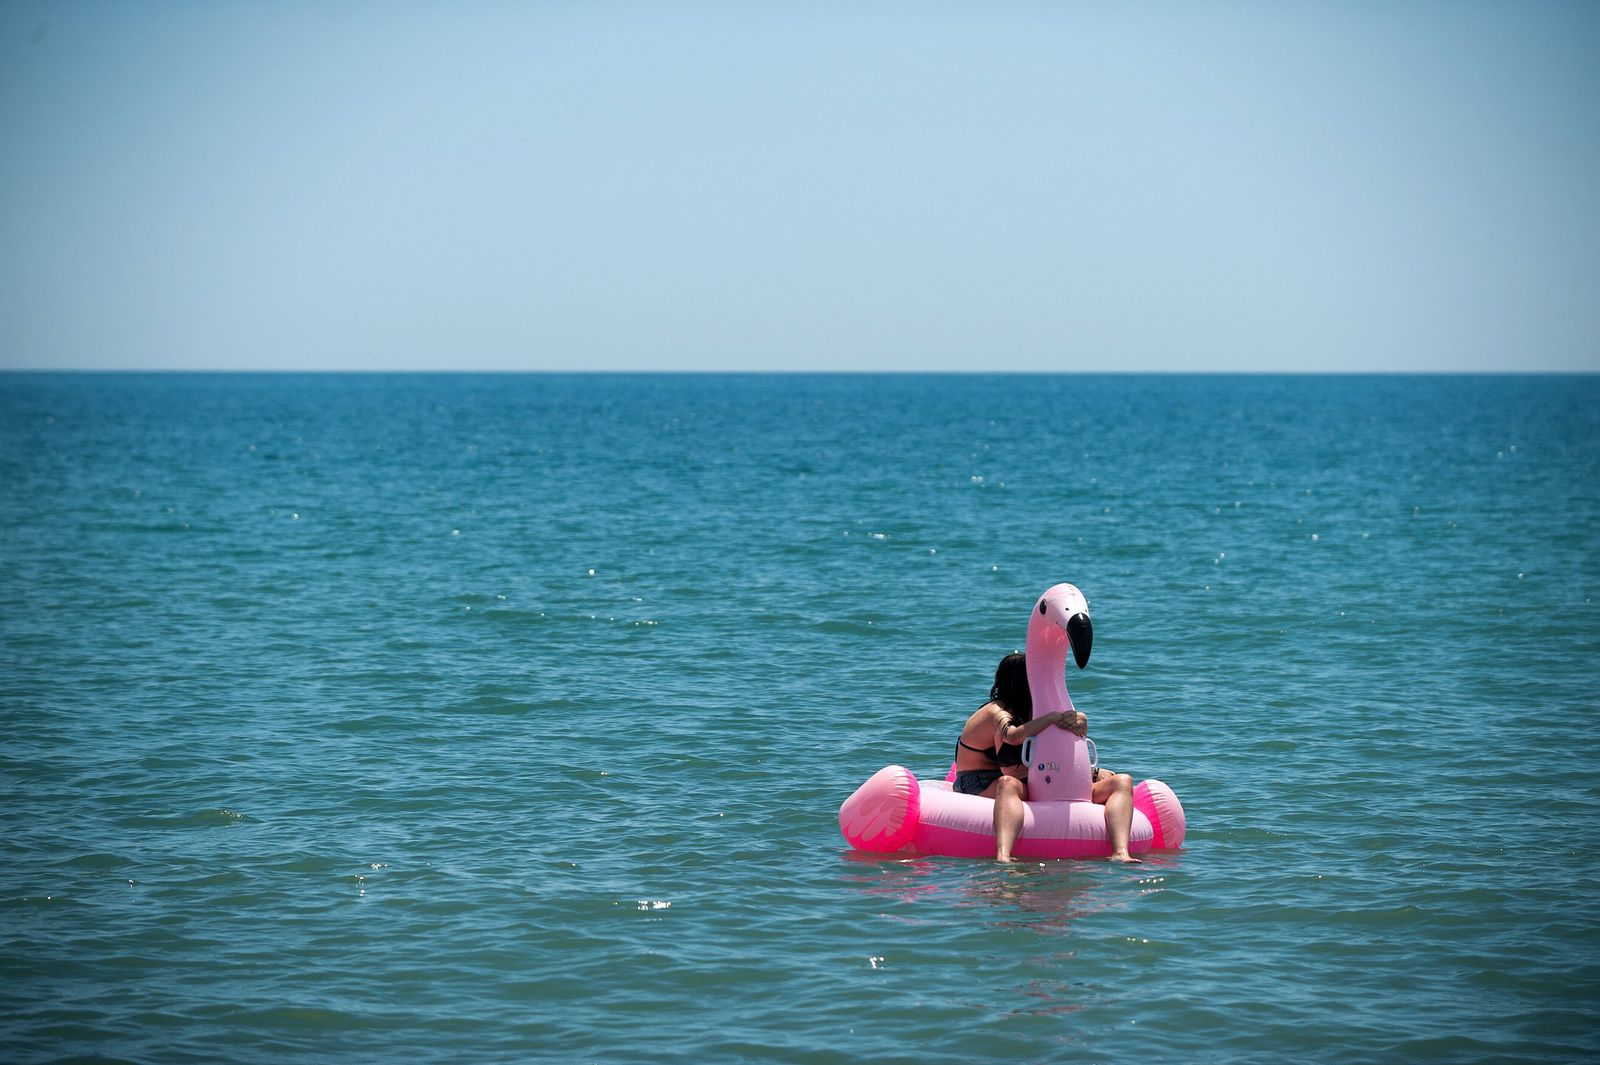 June 1, 2020, Malaga, Spain: Two people are seen on a float in a form of a swan at Misericordia beach as they enjoy the